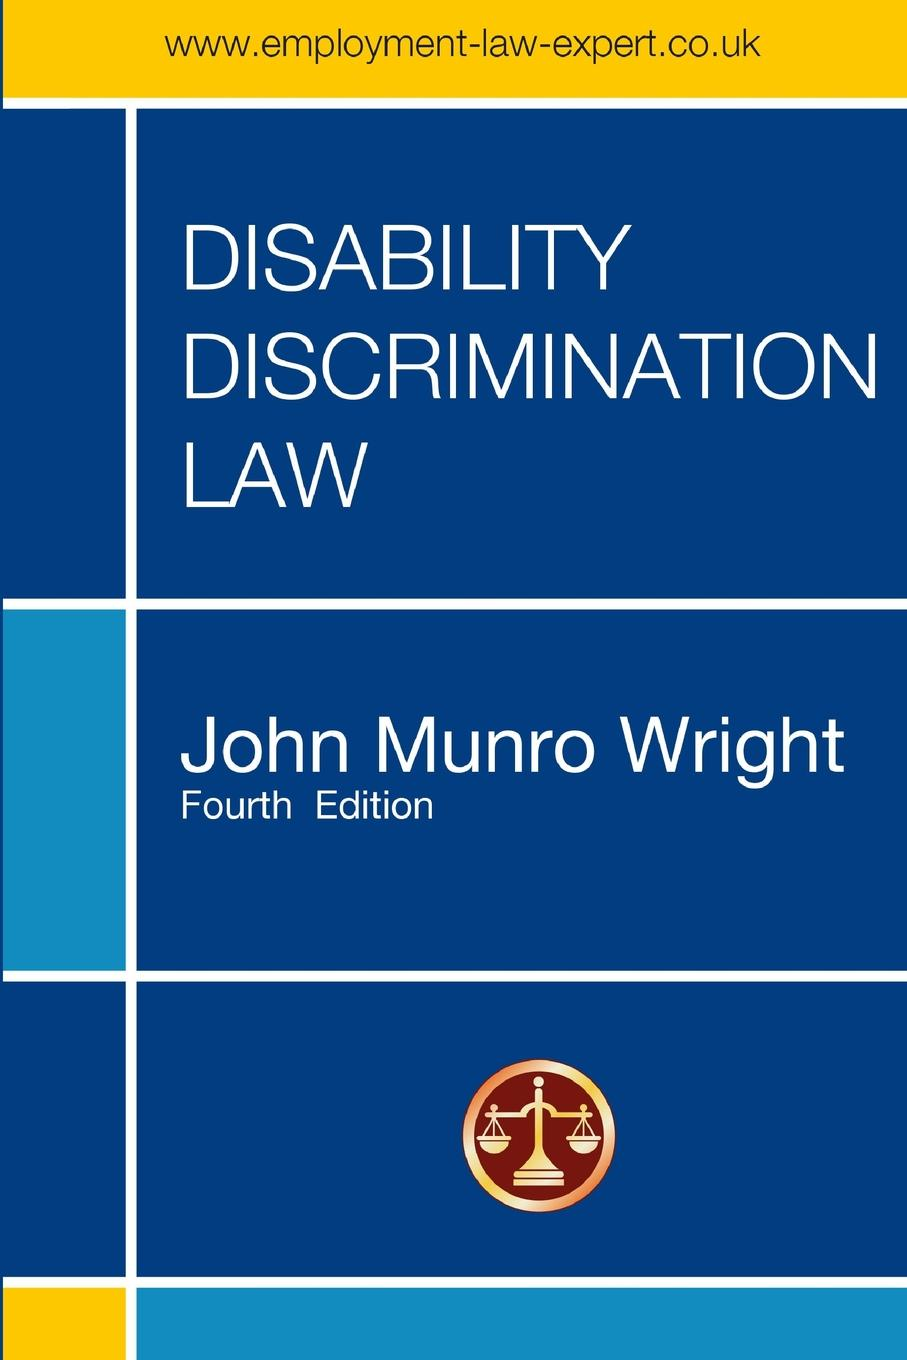 John M. Wright DISABILITY DISCRIMINATION LAW - FOURTH EDITION bdsm and the law